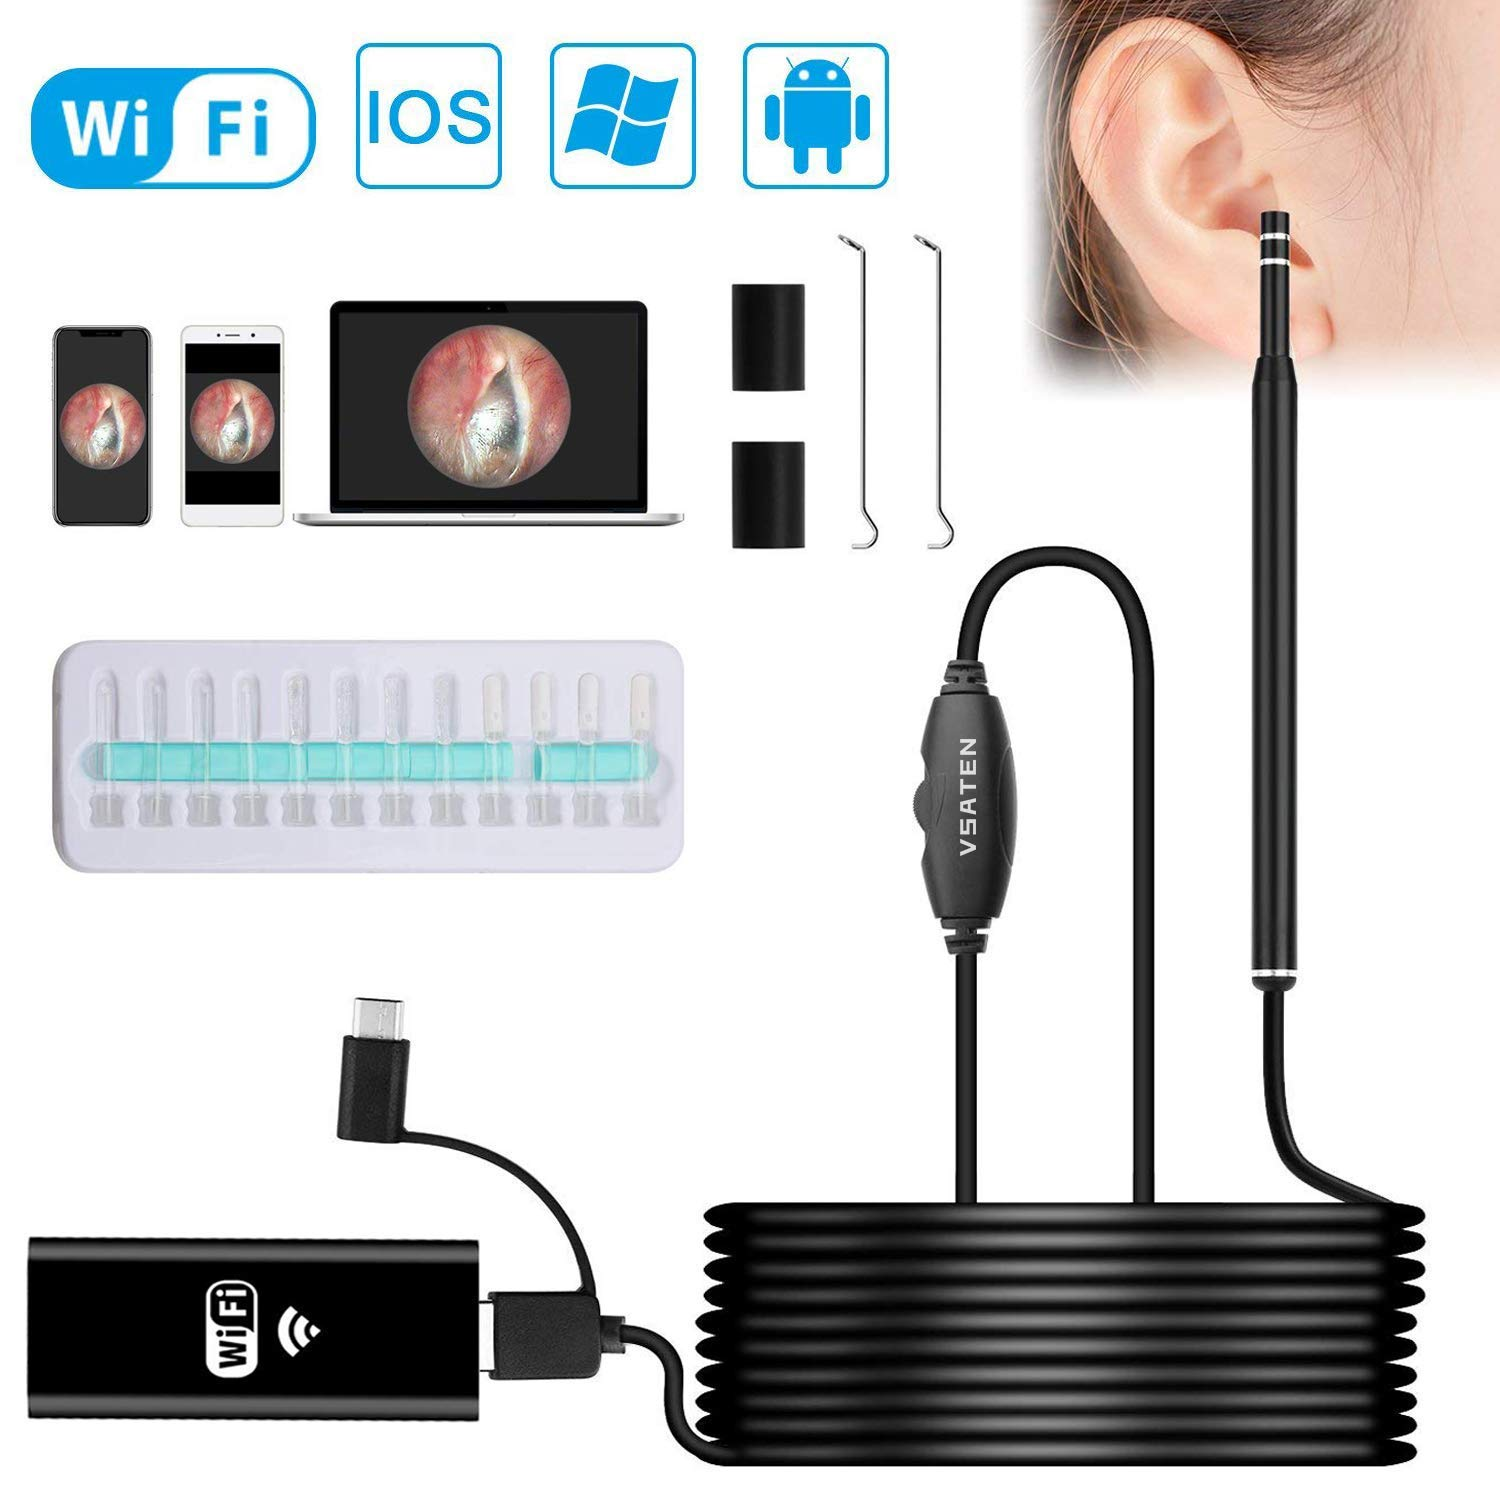 Ear Otoscope, VSATEN Wireless WiFi Otoscope 3 in 1 1.3 MP Digital Ear Inspection Camera Earwax Cleaning Tool with 6 Adjustable LEDs for iPhone & iPad, Android Devices, Windows & MAC PC Computer by VSATEN